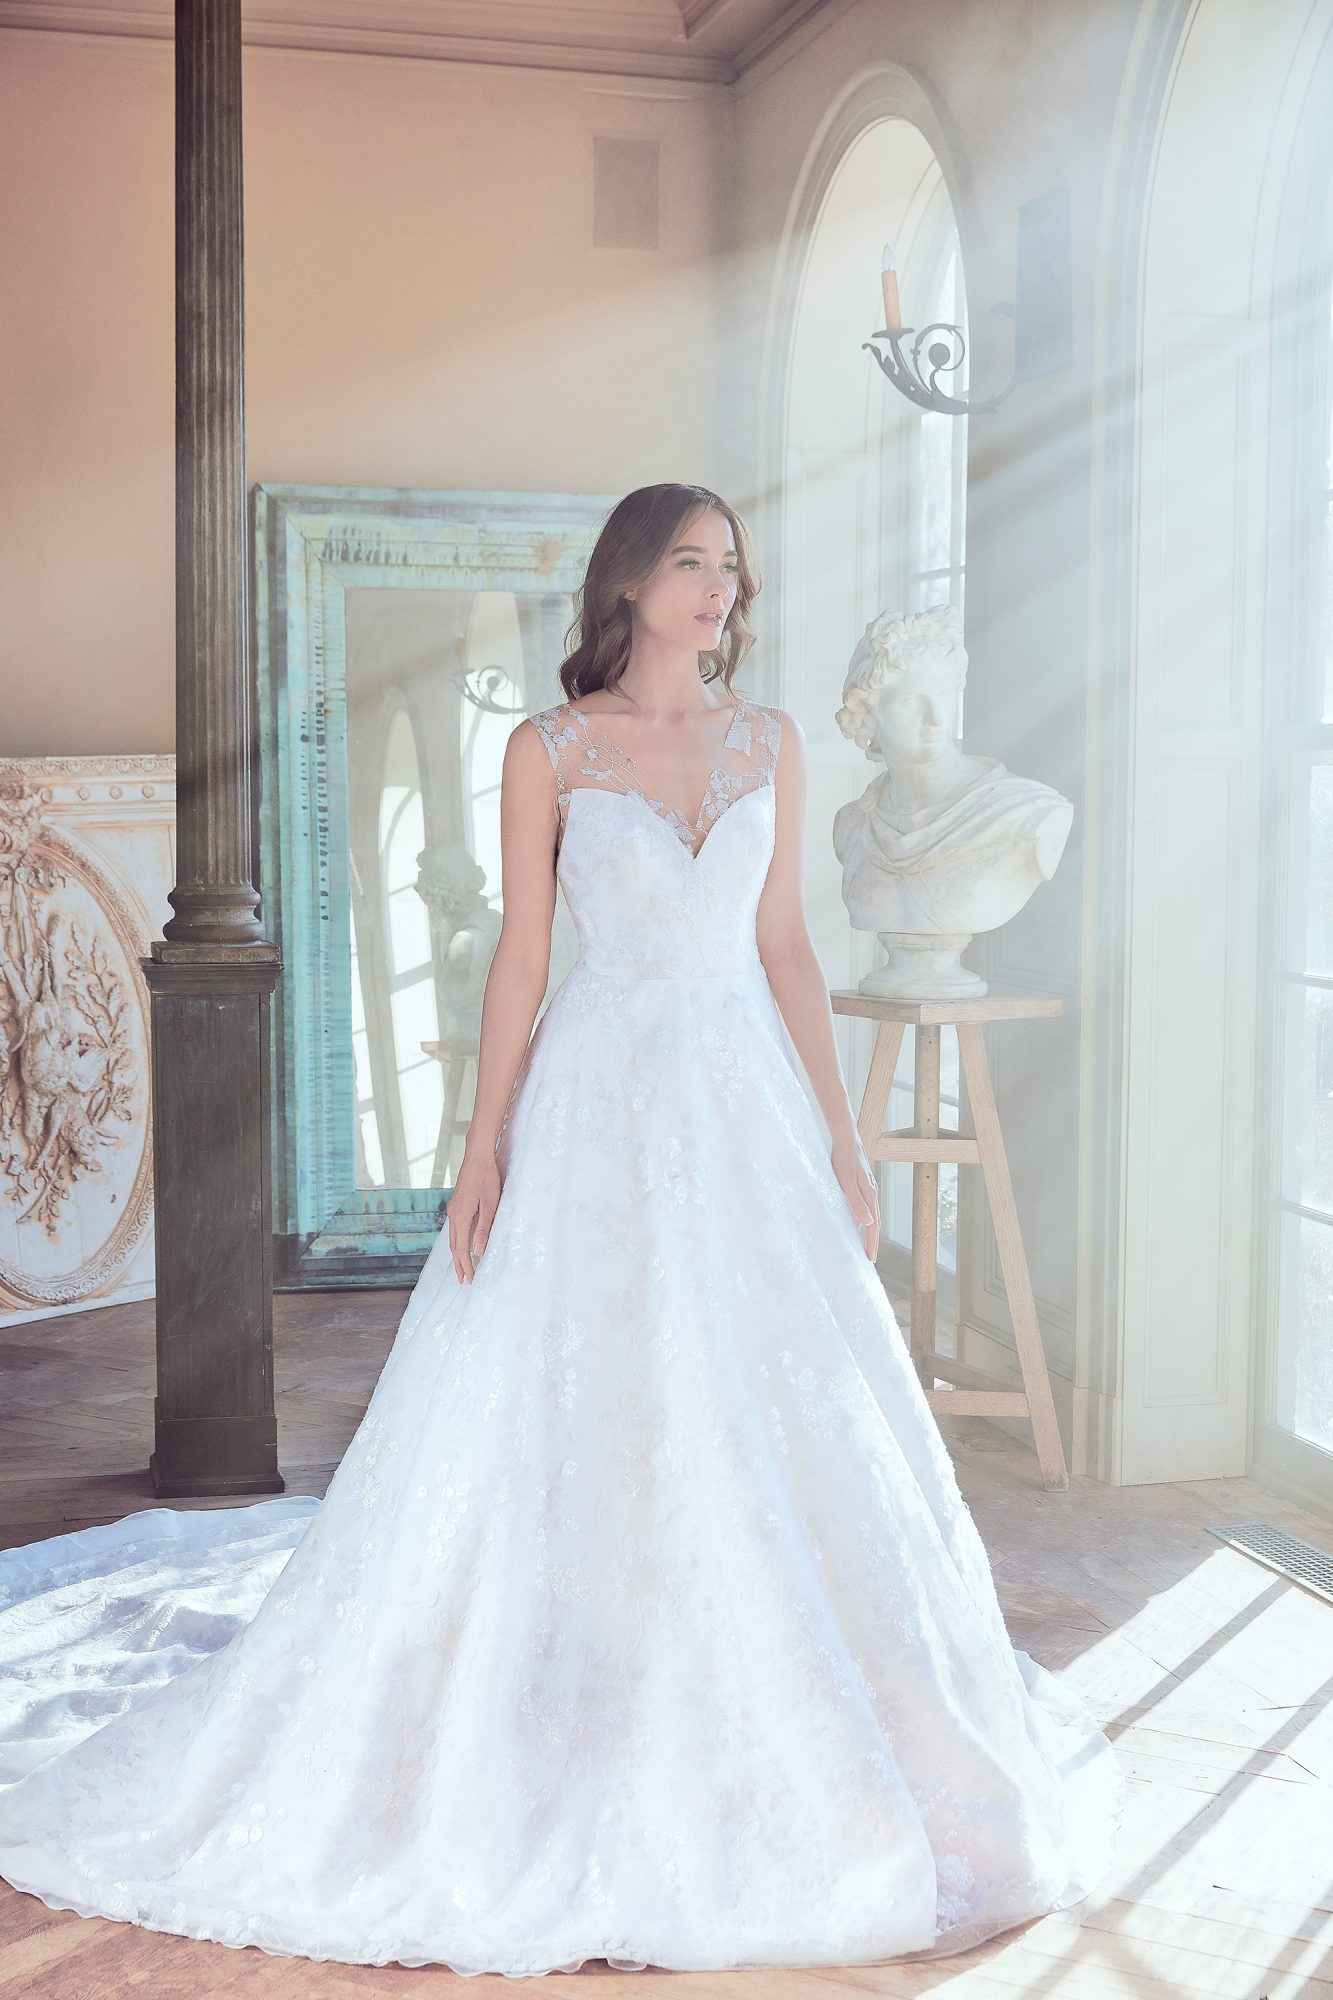 sareh nouri wedding dress spring 2019 sweetheart a-line with train